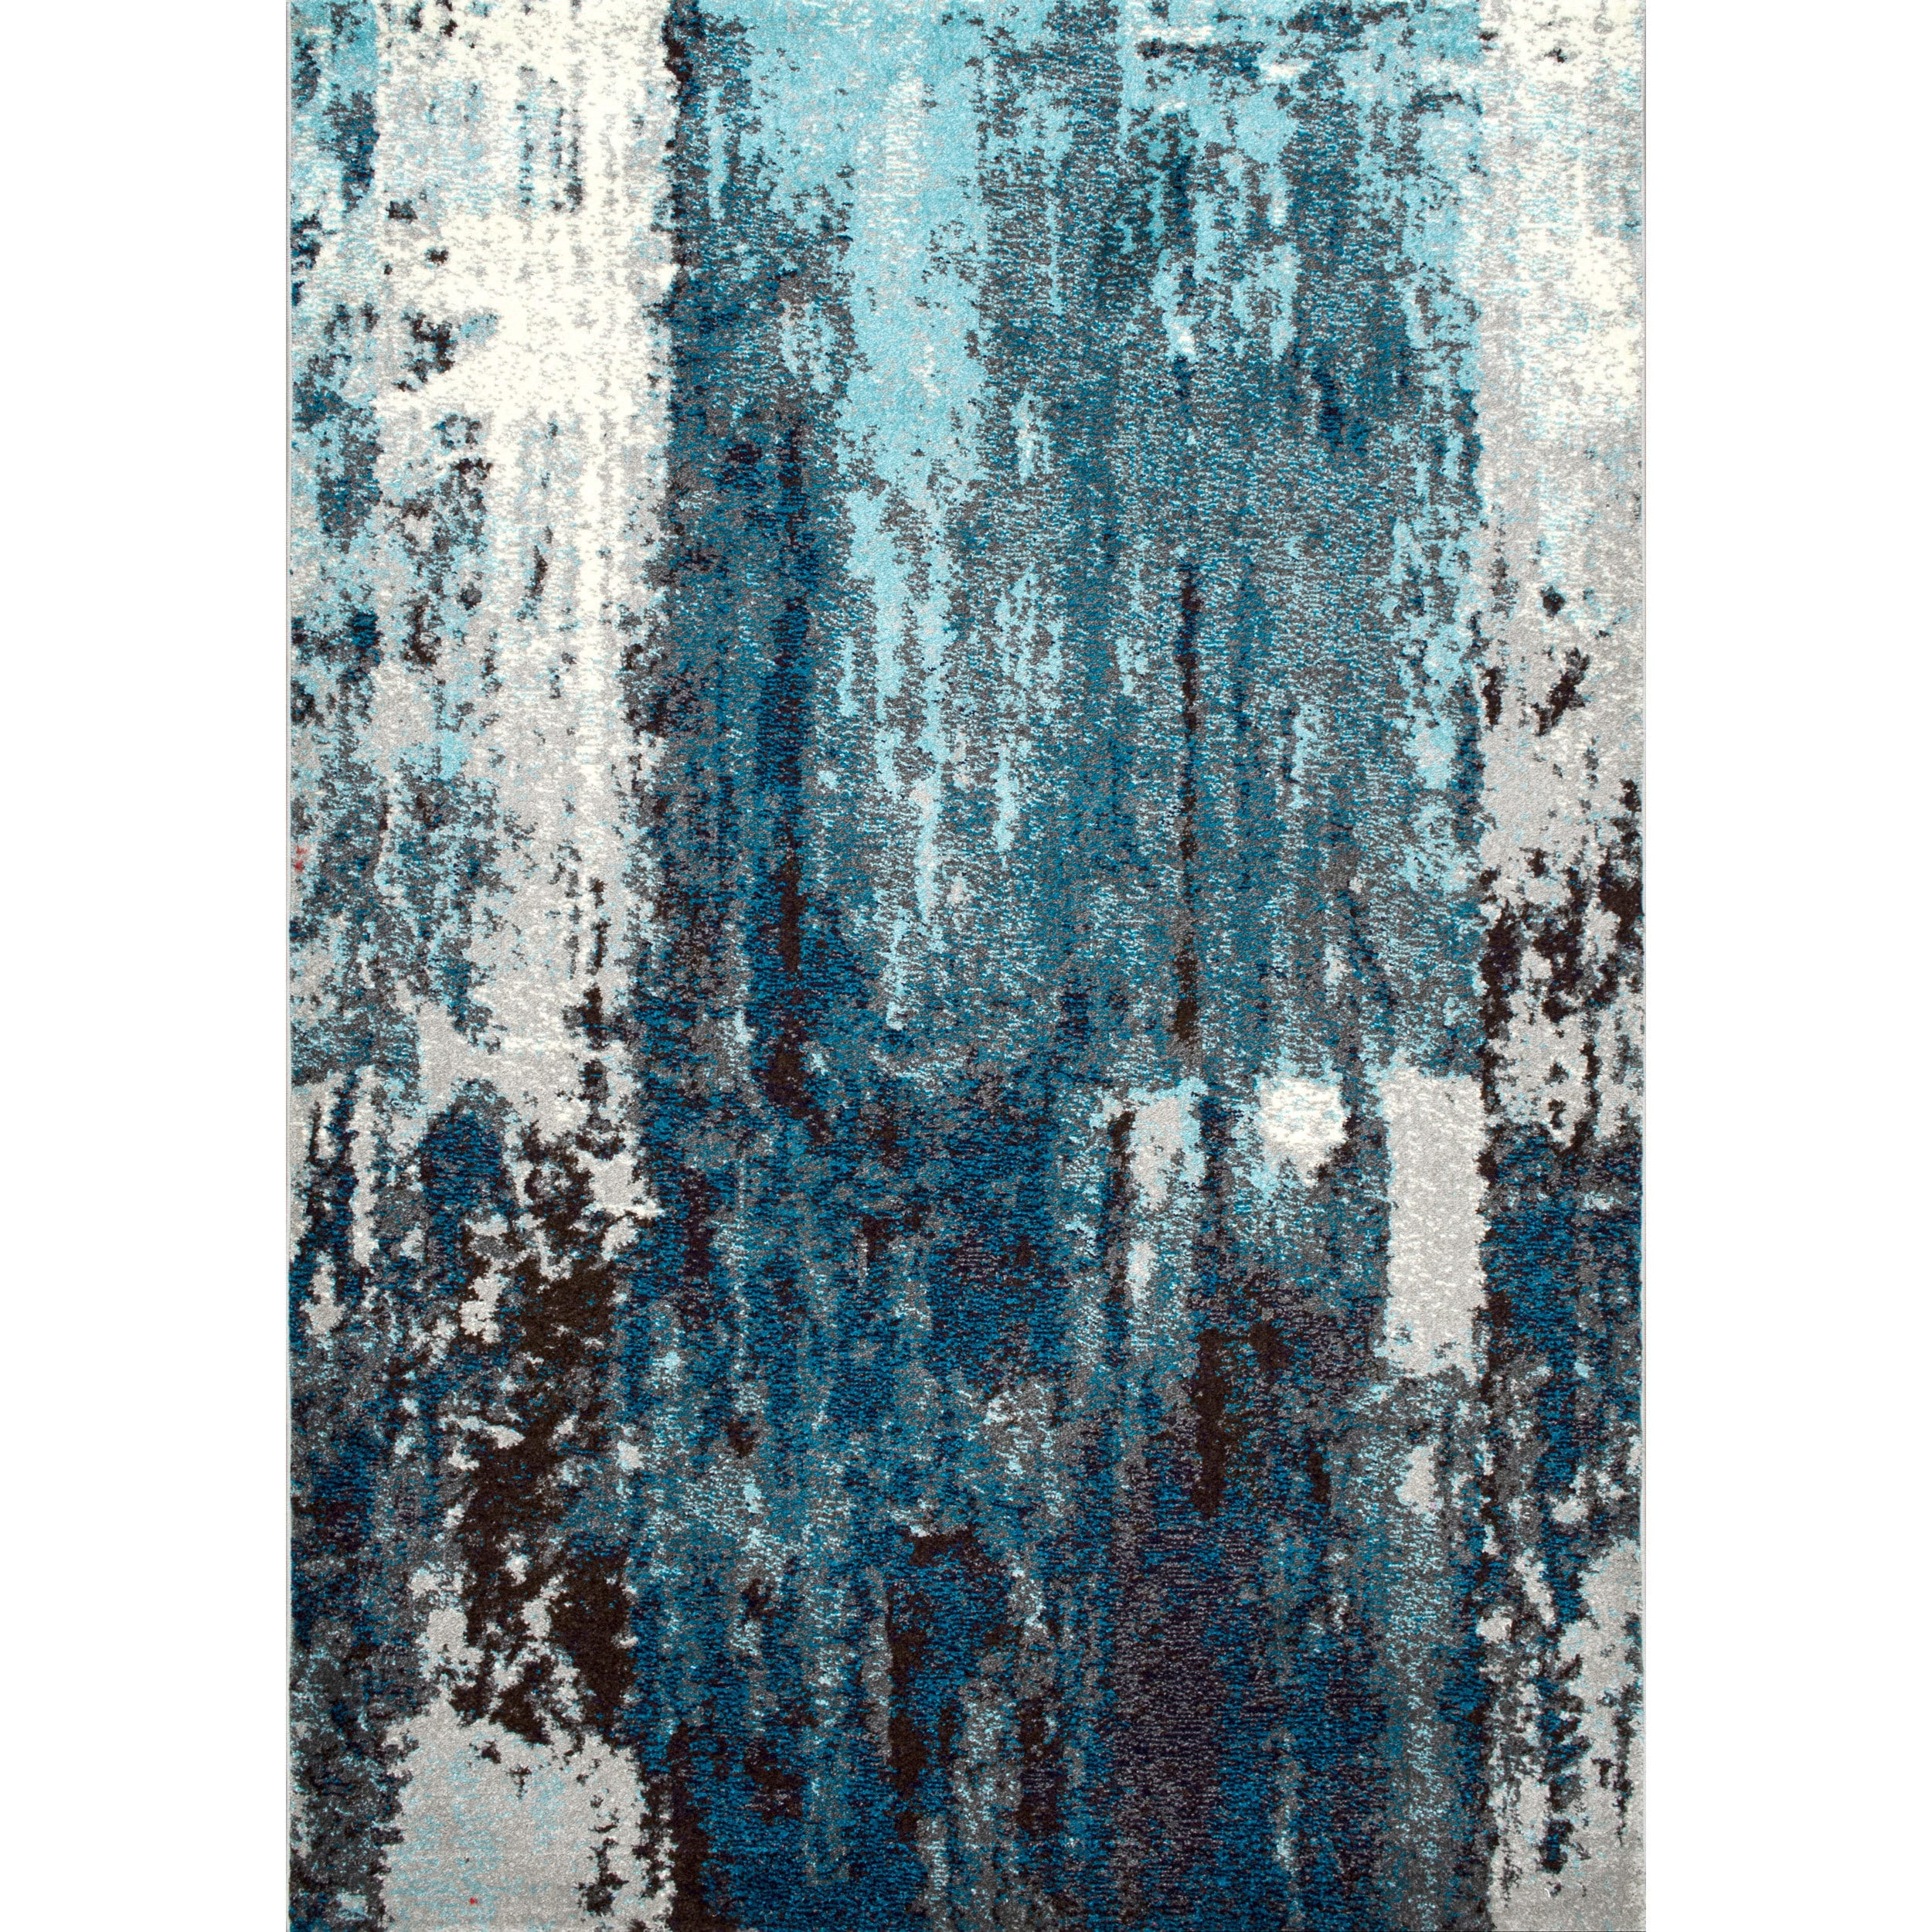 rugs klein capri stunning charcoal patches free shipping australia rug grey floor blue modern nit area